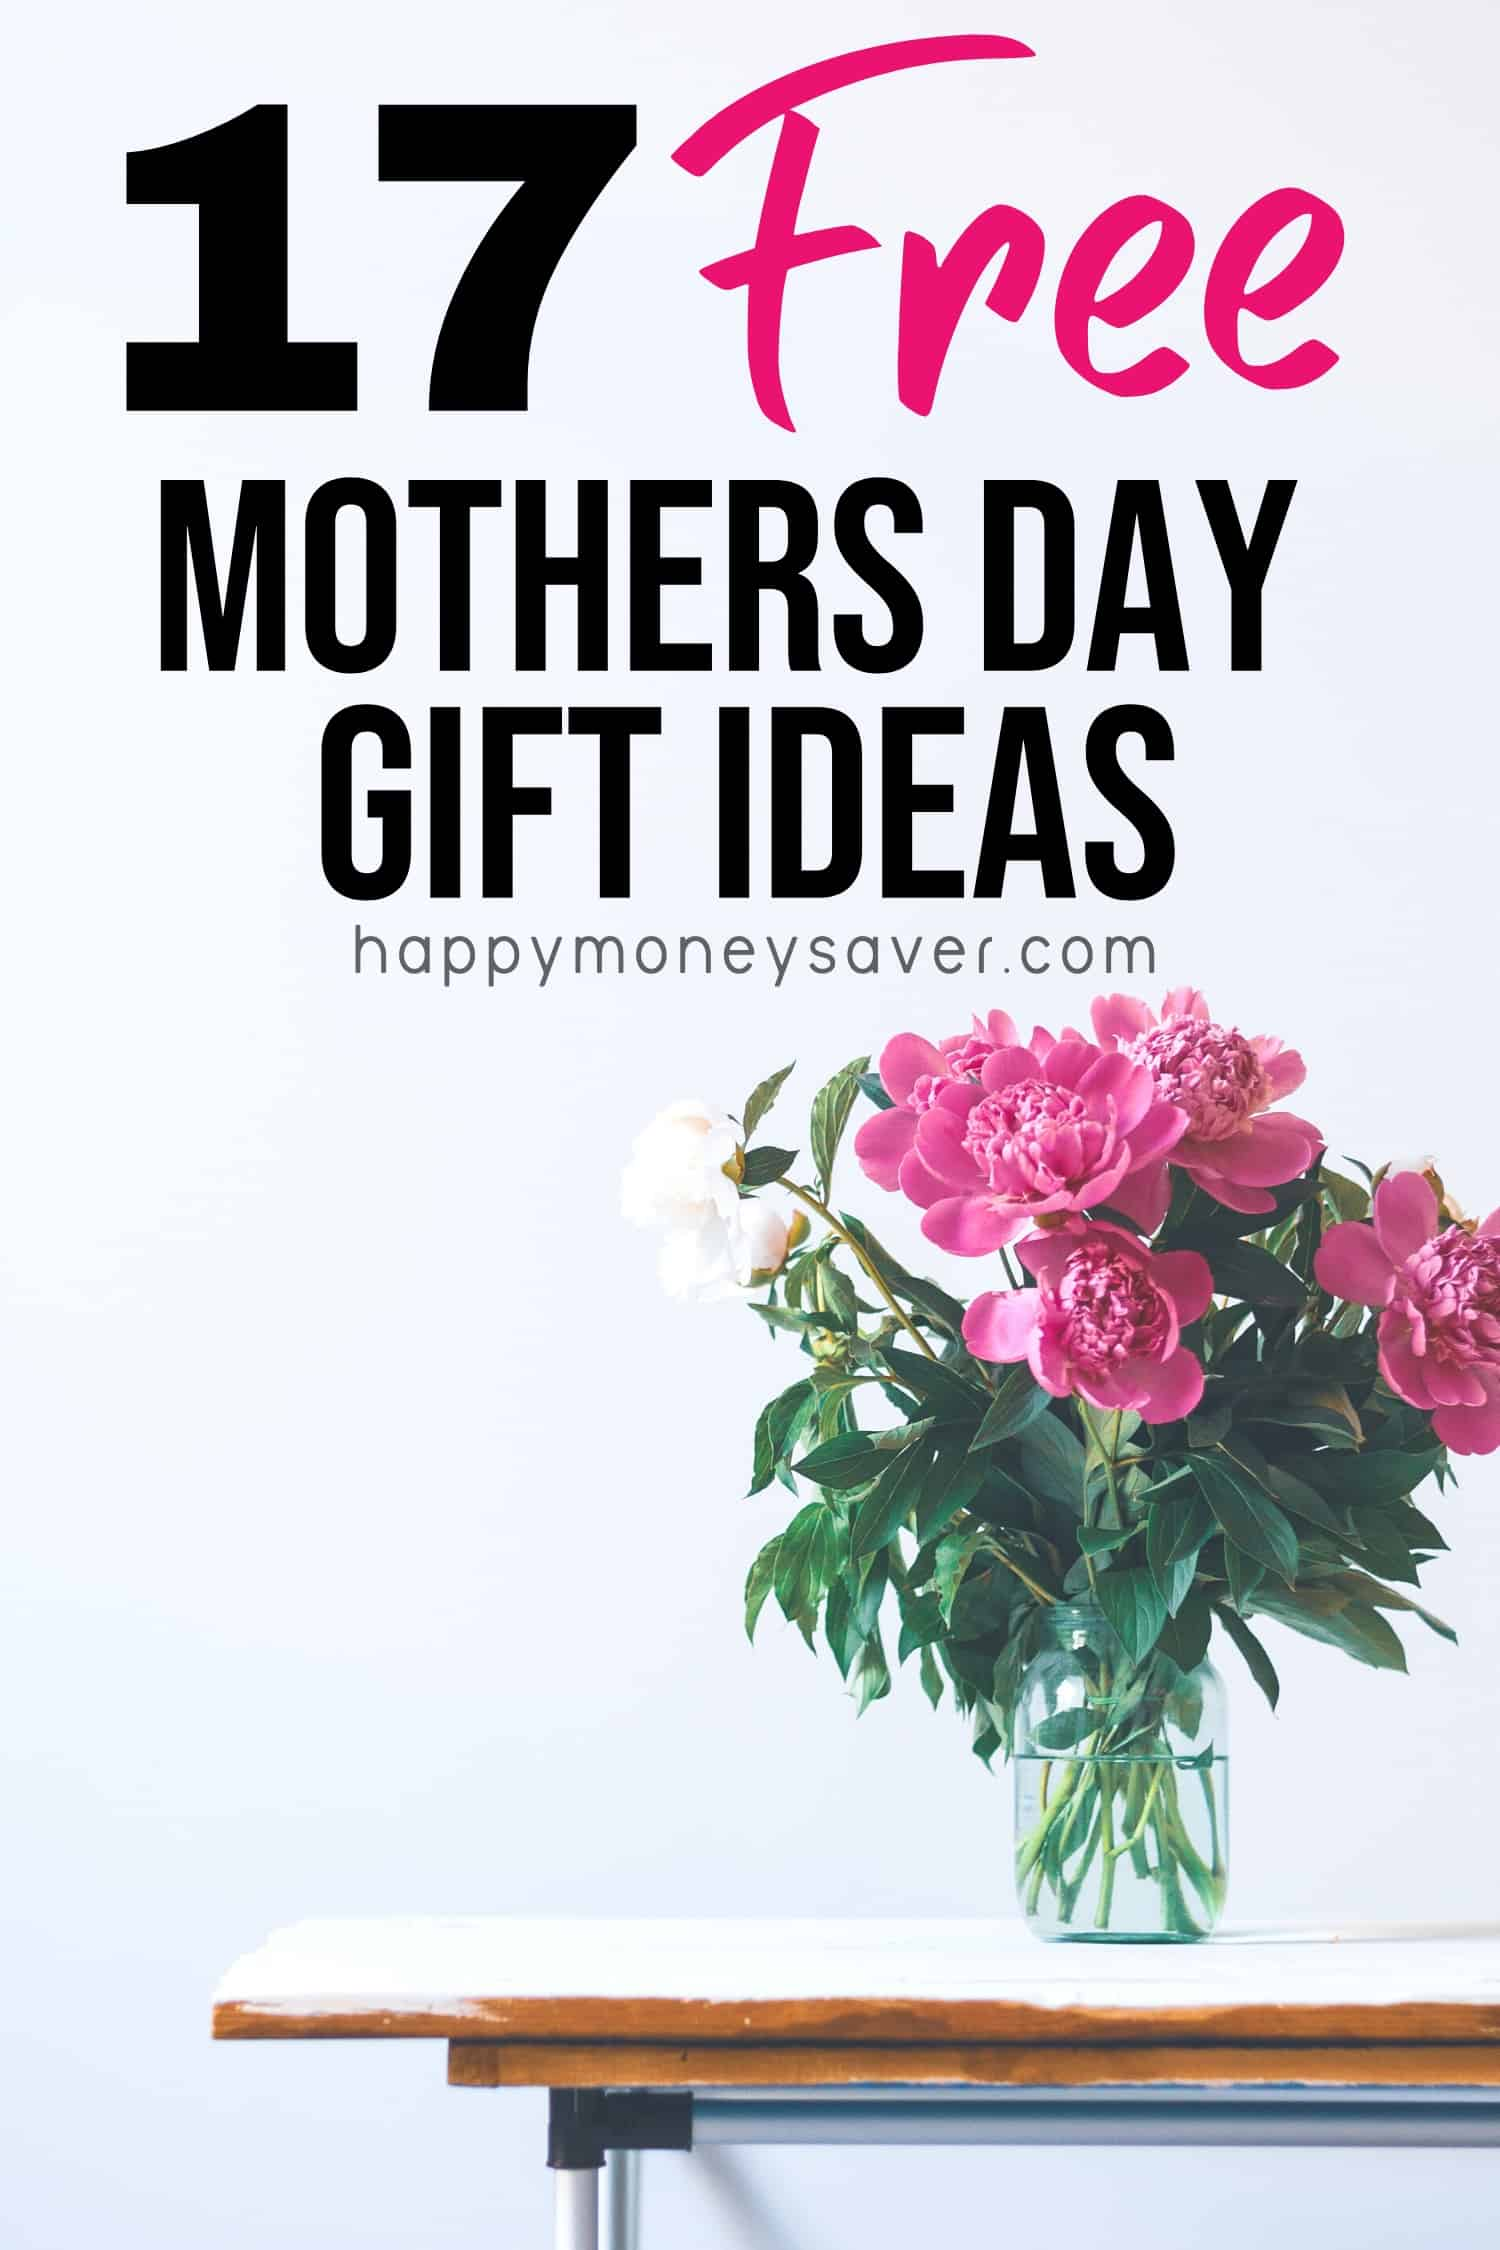 """The words """"17 Free Mother's Day Gift Ideas happymoneysaver.com"""" with a picture of pink flowers in vase on a wooden table."""